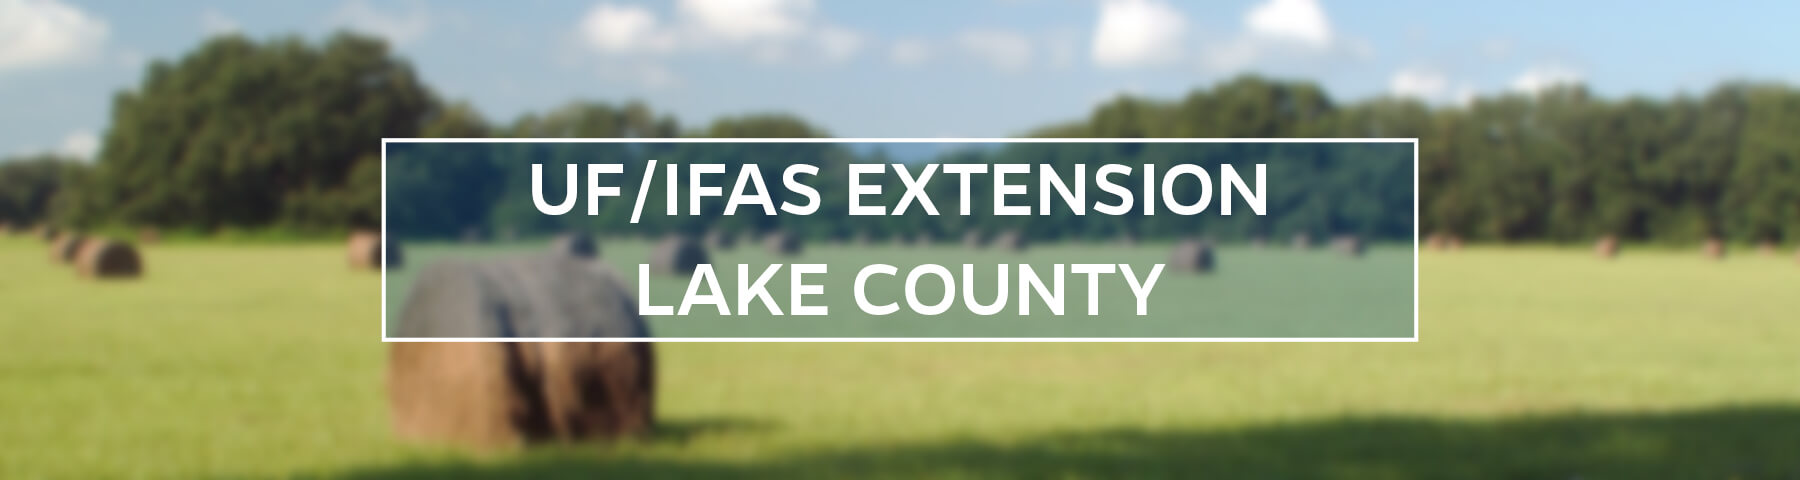 UF/IFAS Extension Lake County